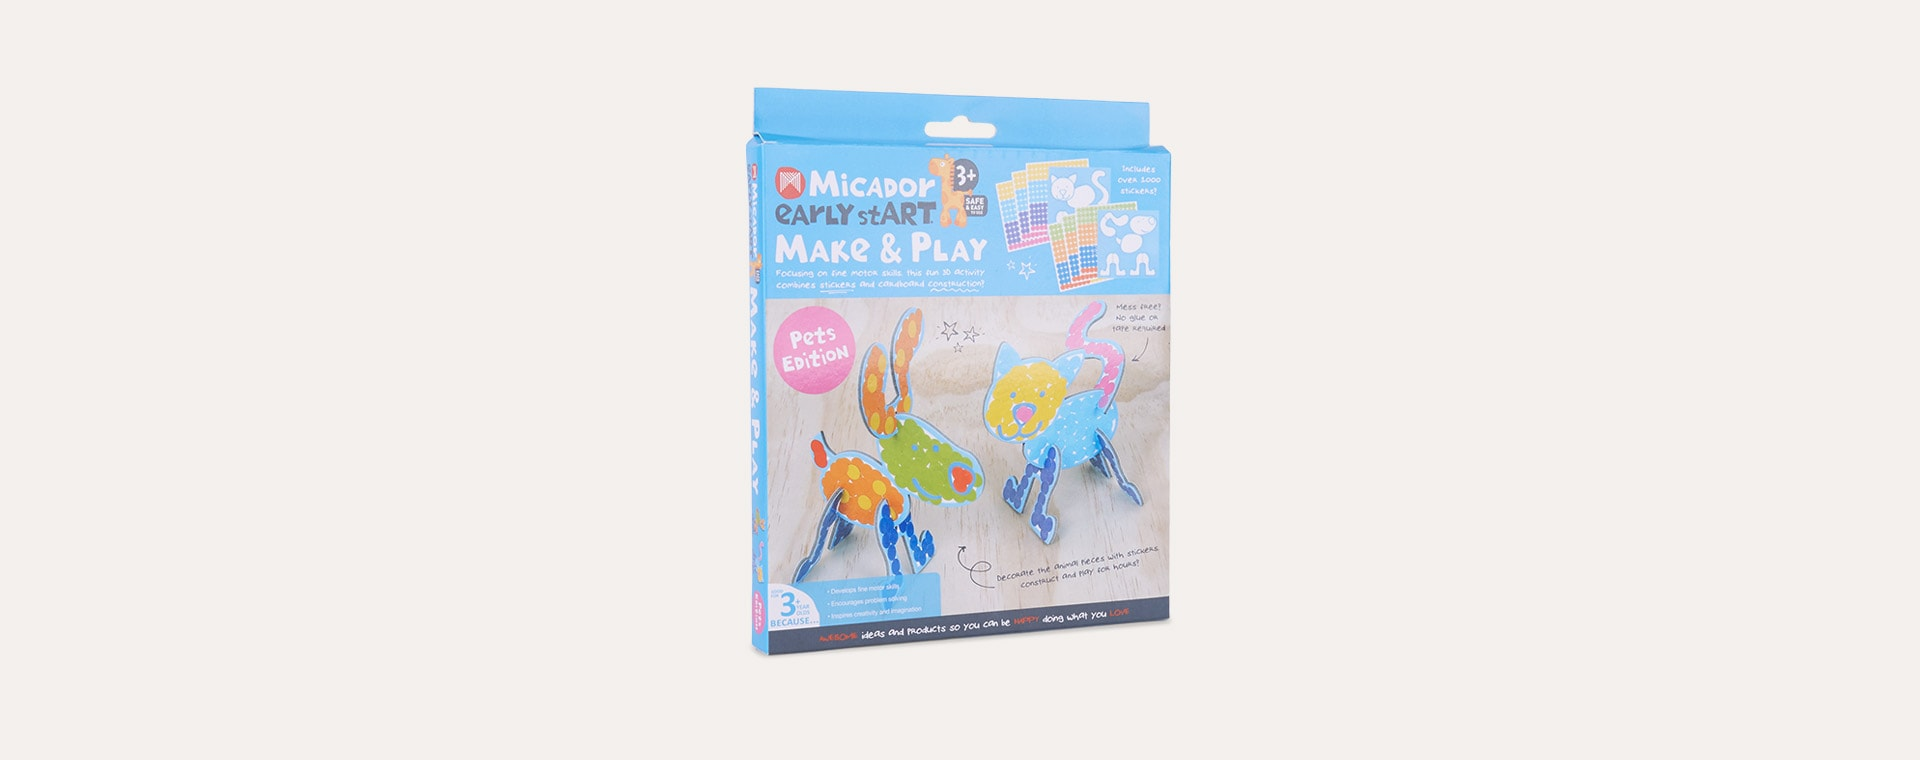 Pets Edition Micador Early stART Make & Play